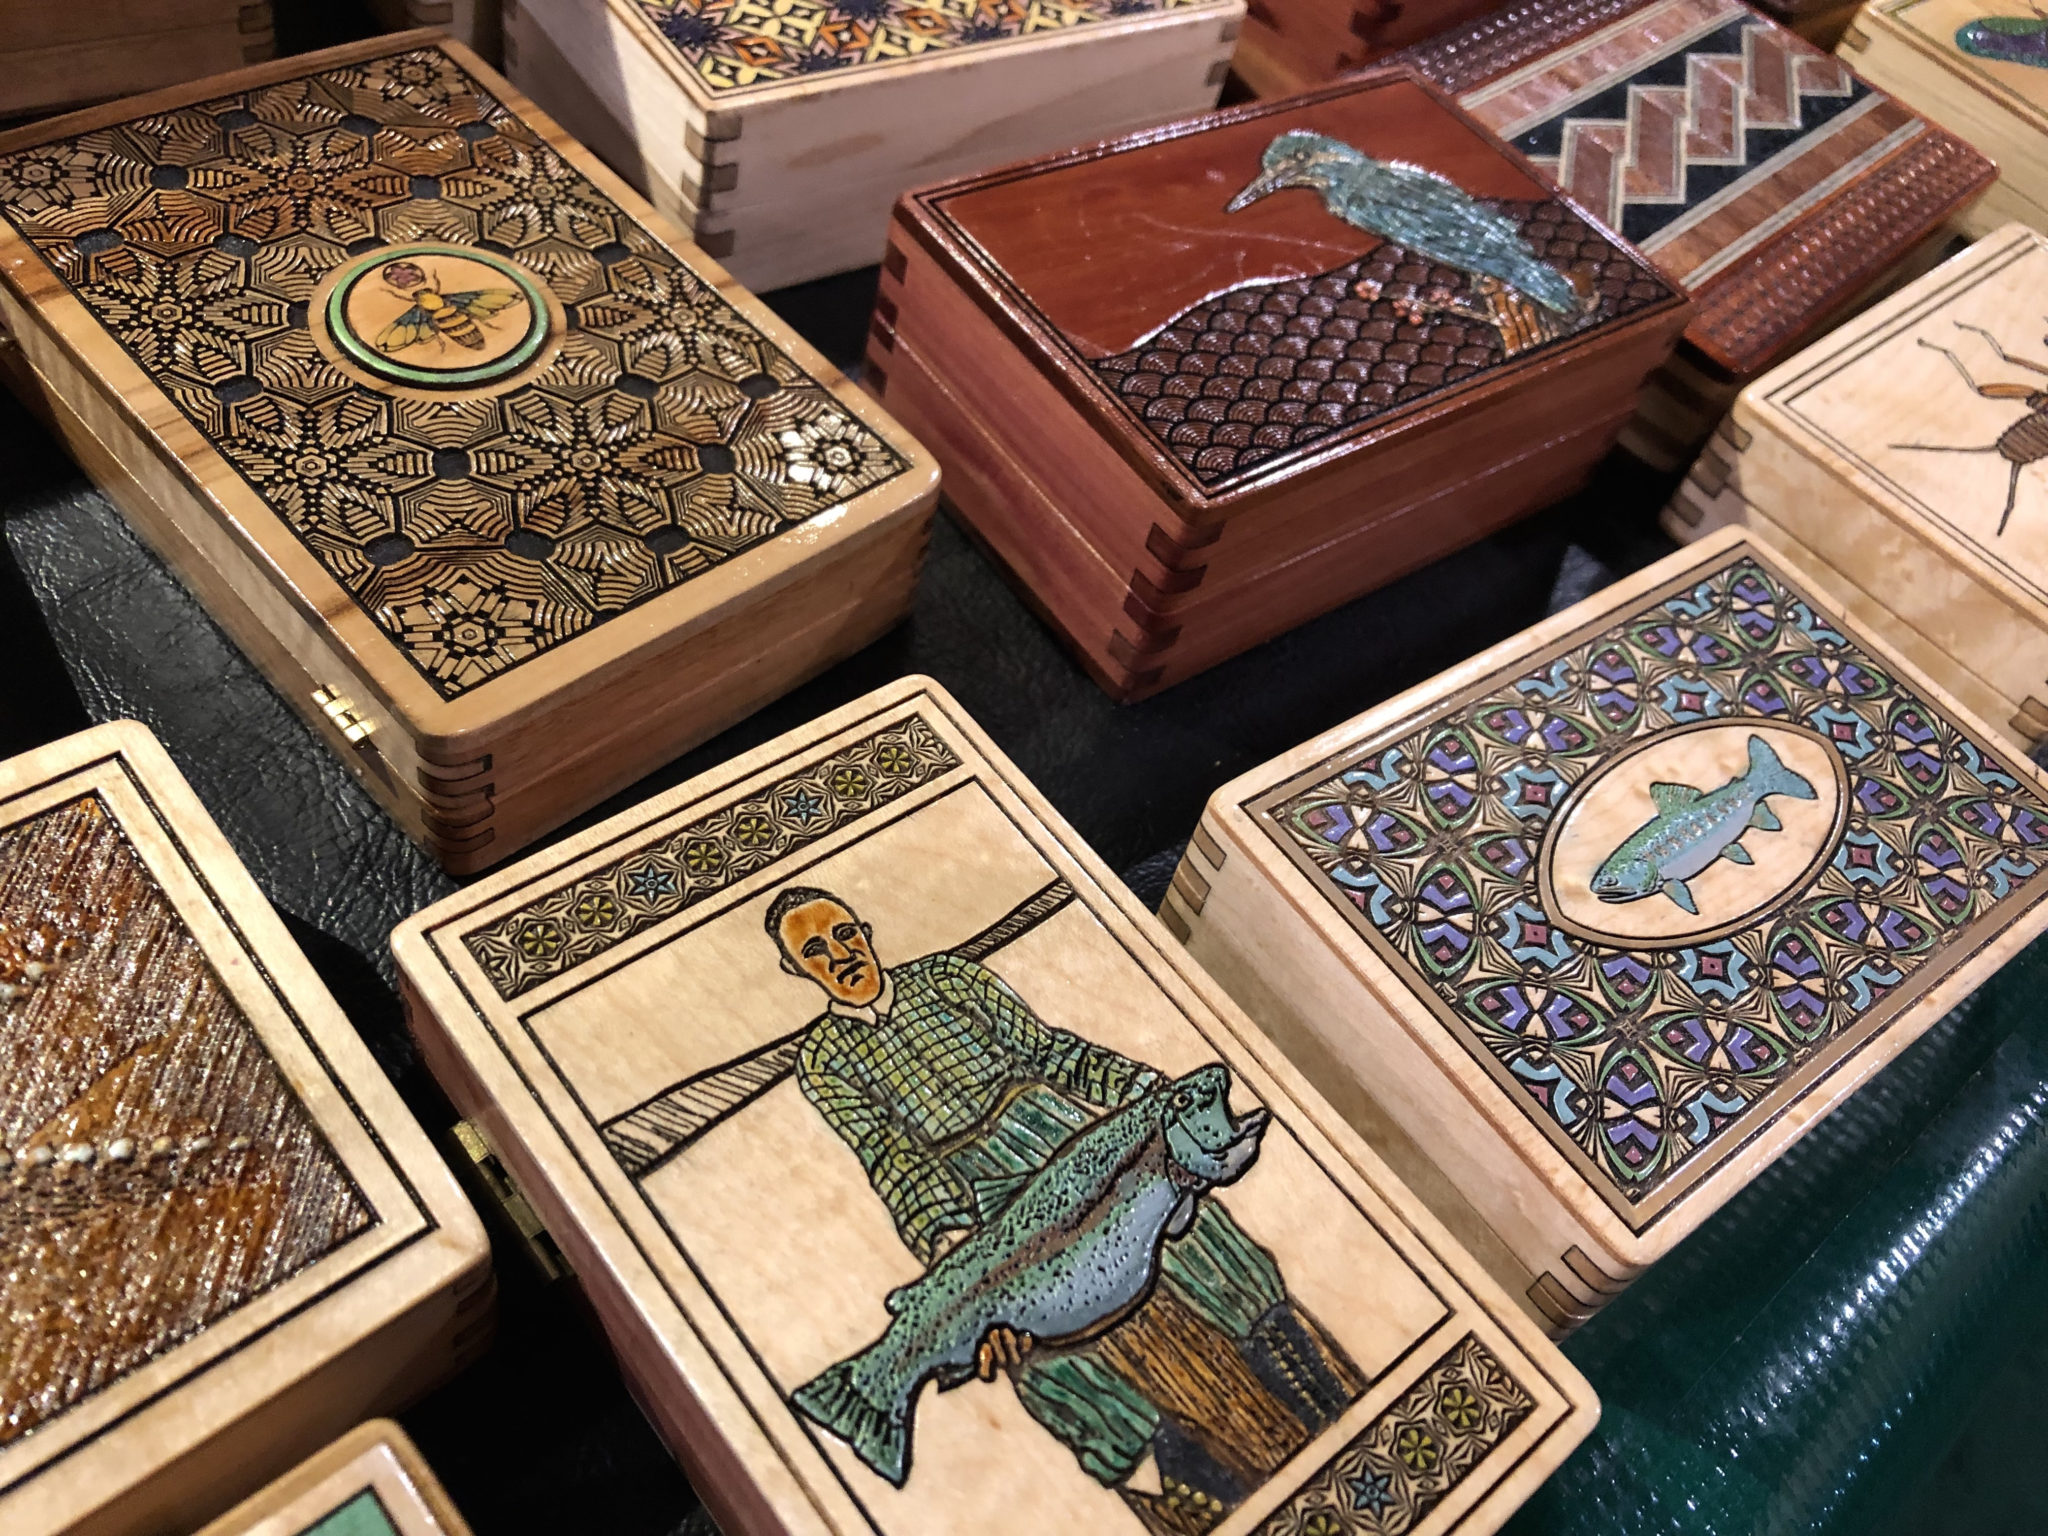 Wooden Tenkara Boxes at the Fly Fishing Show